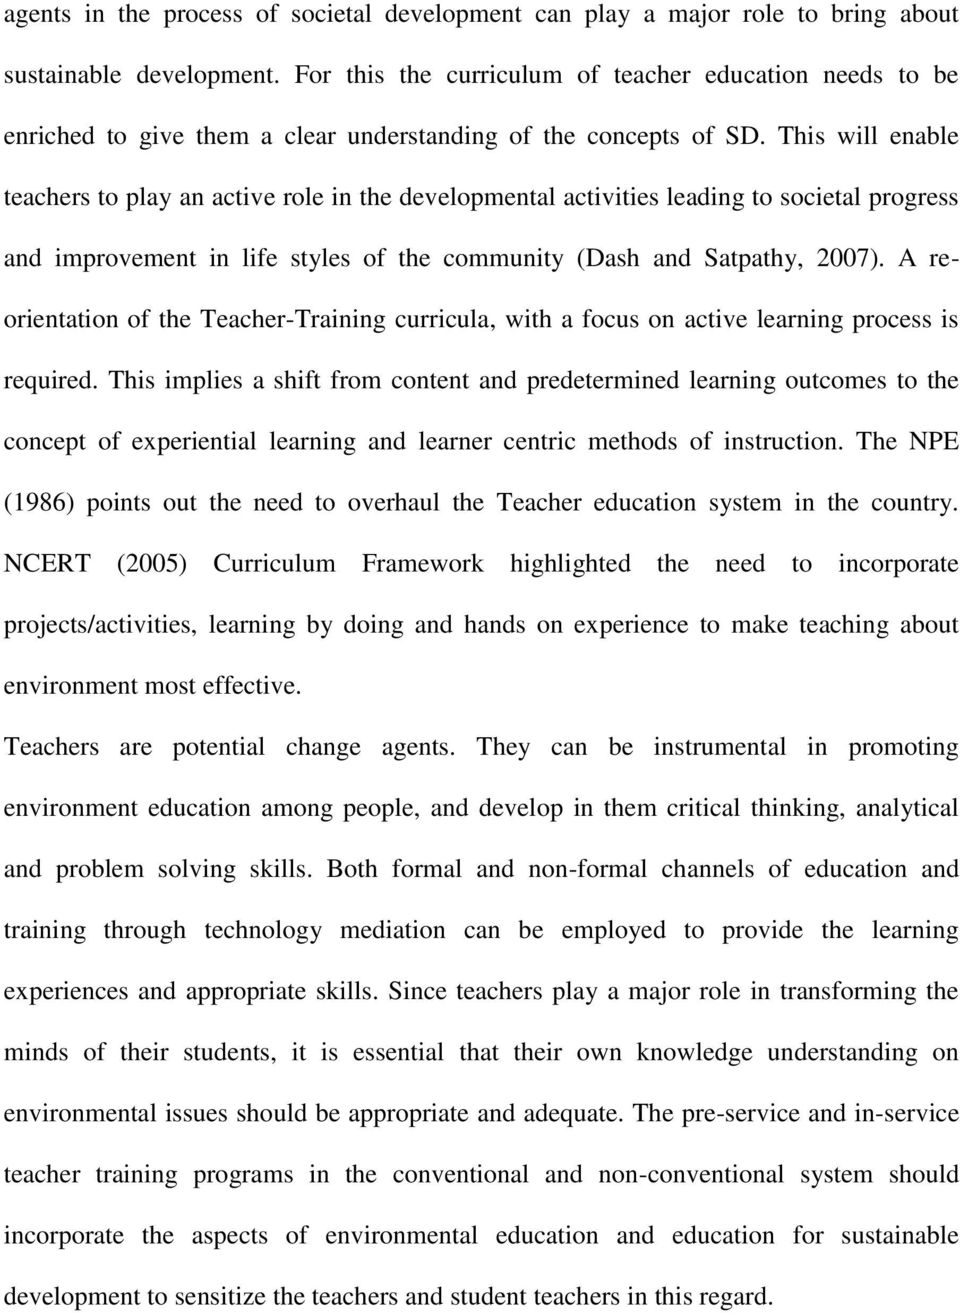 This will enable teachers to play an active role in the developmental activities leading to societal progress and improvement in life styles of the community (Dash and Satpathy, 2007).